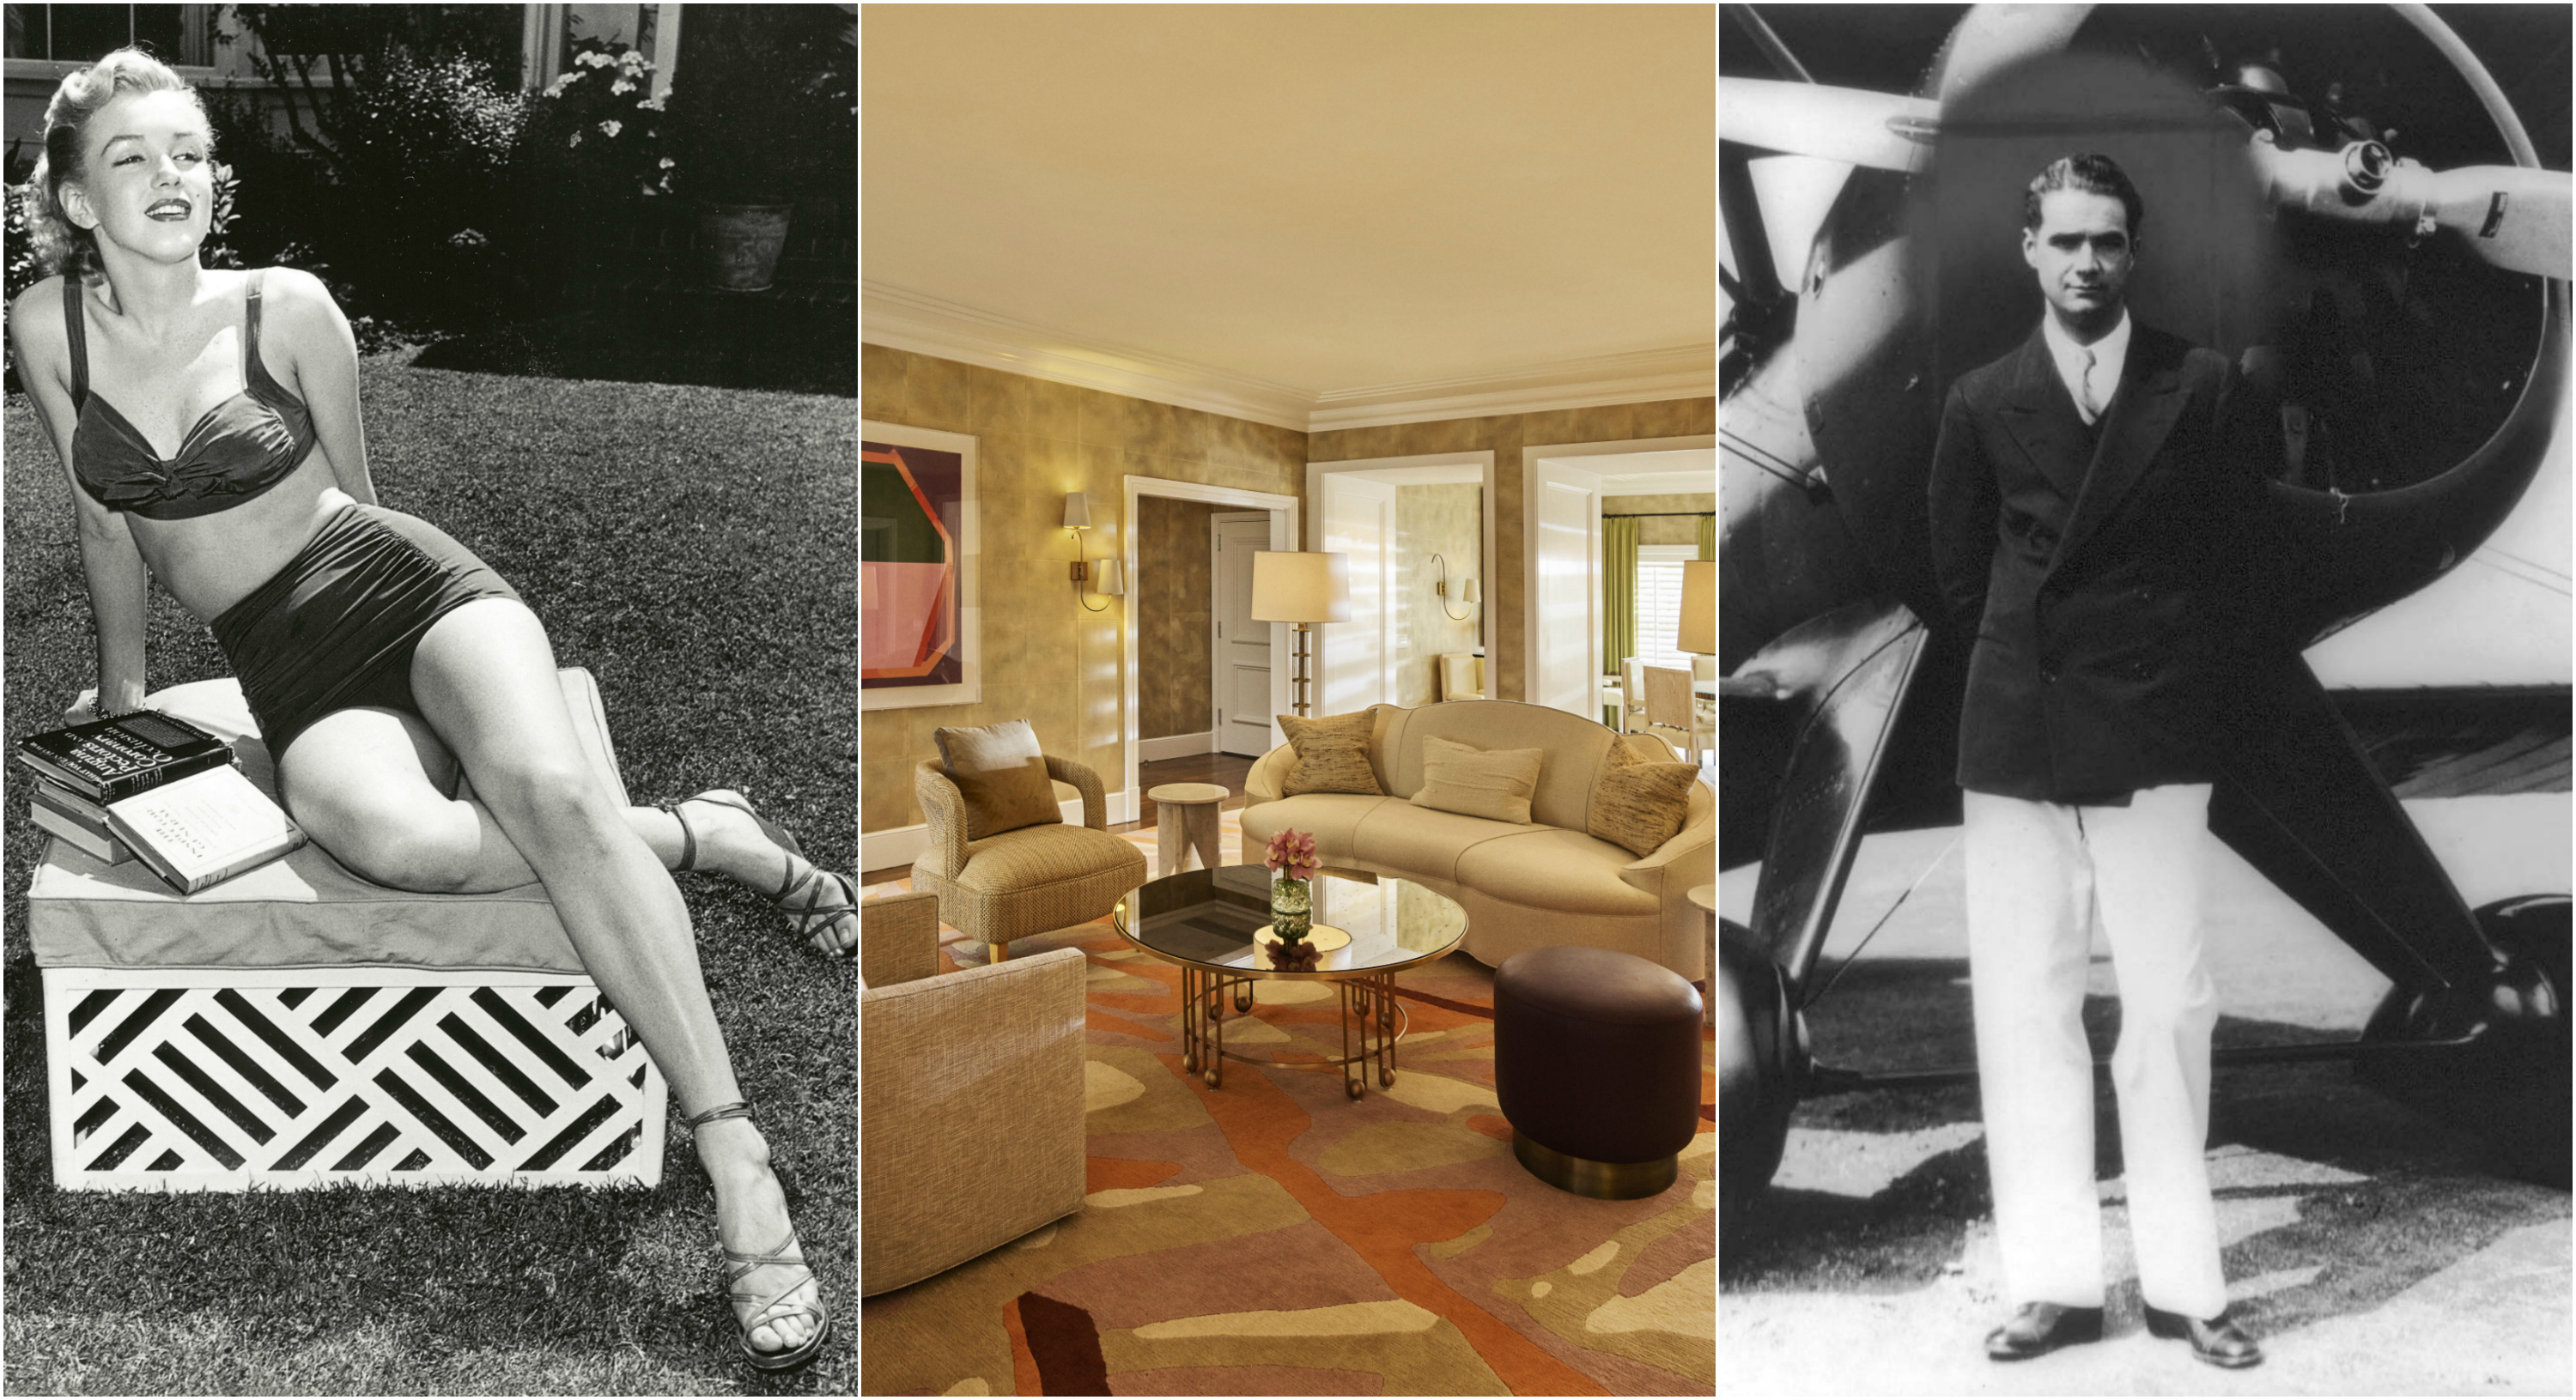 235e4c3f942 Beverly Hills Hotel Debuts a Retro Bungalow Inspired by Marilyn Monroe